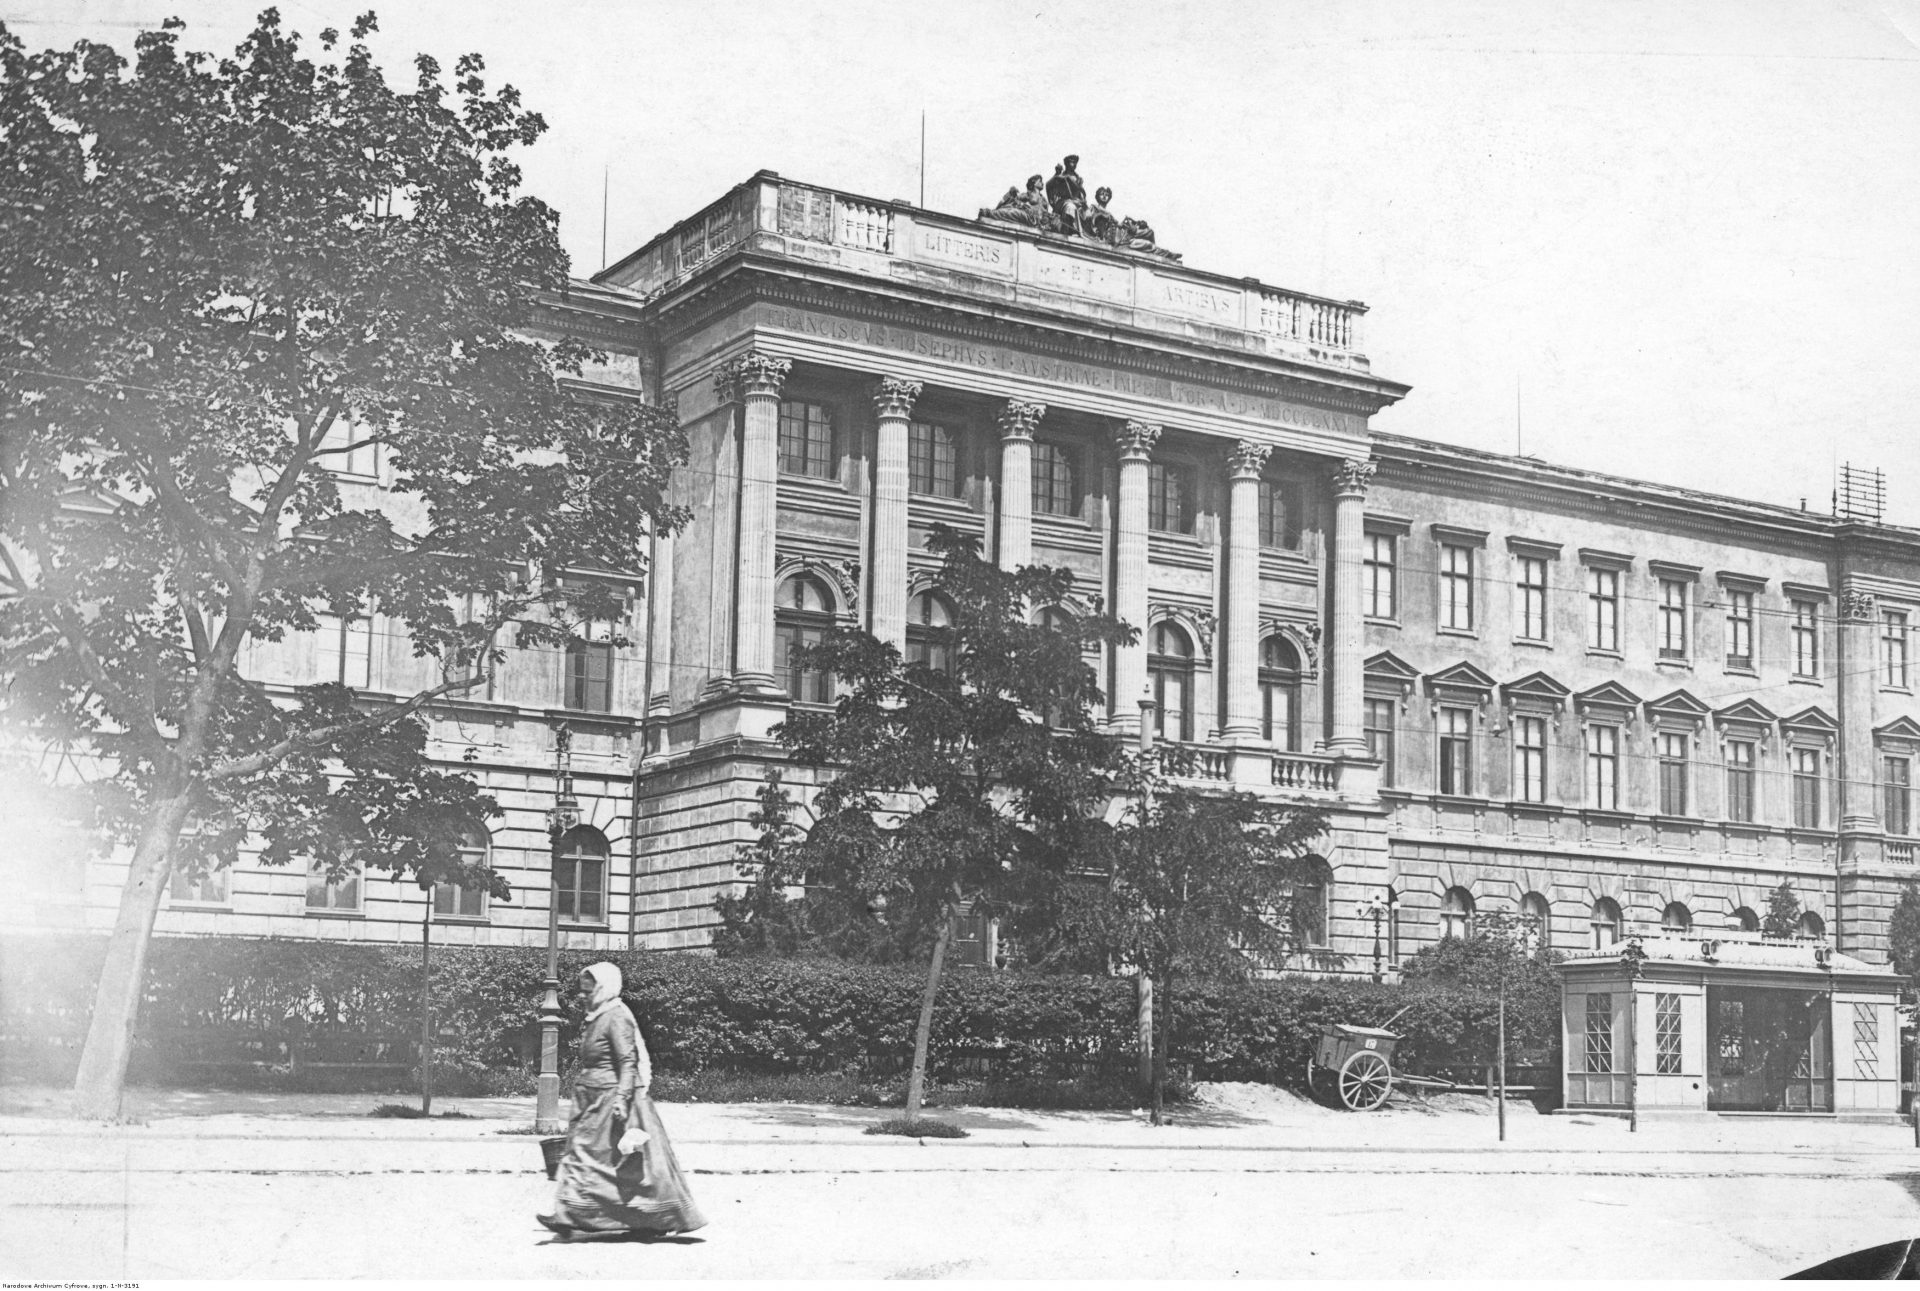 The Habsburg Higher Technical School in Lviv — Lviv Polytechnic